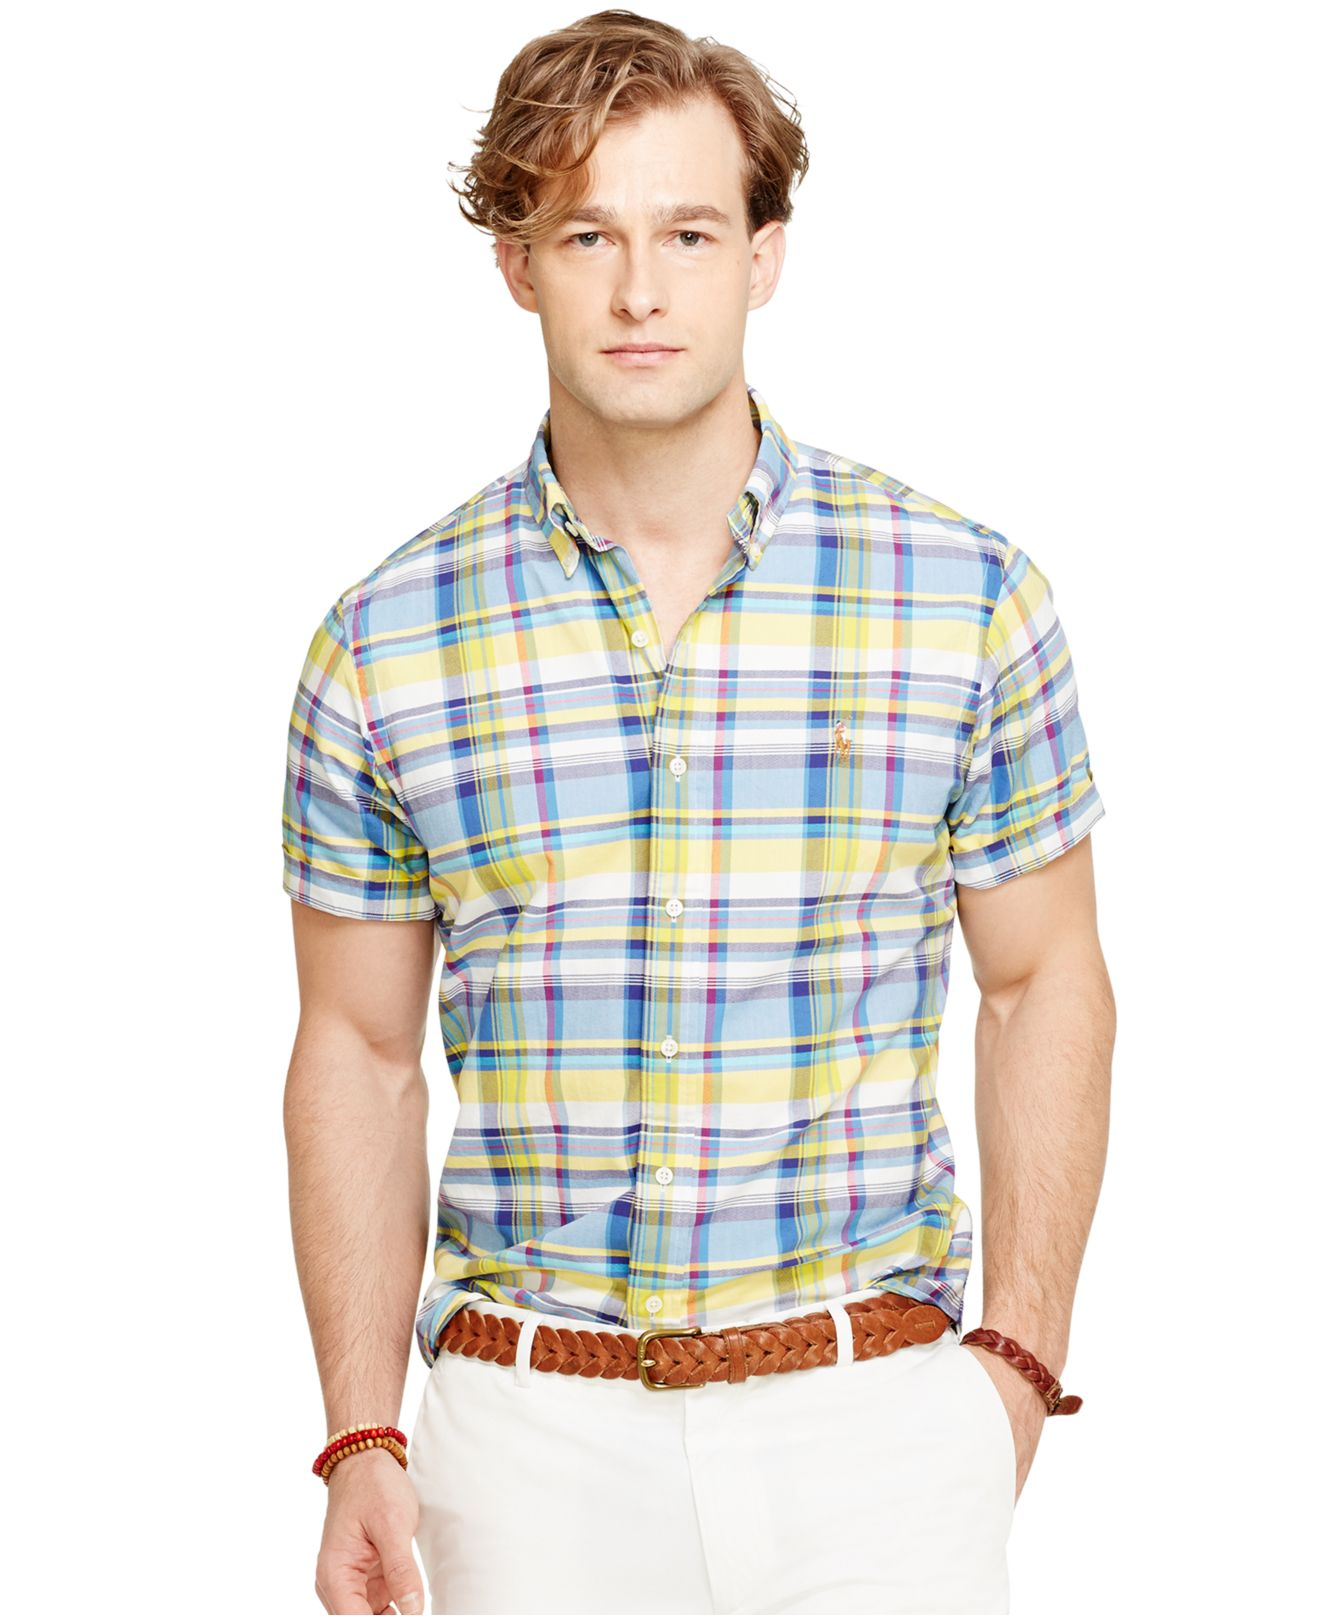 Polo ralph lauren short sleeved plaid oxford shirt in blue for Blue and yellow plaid dress shirt